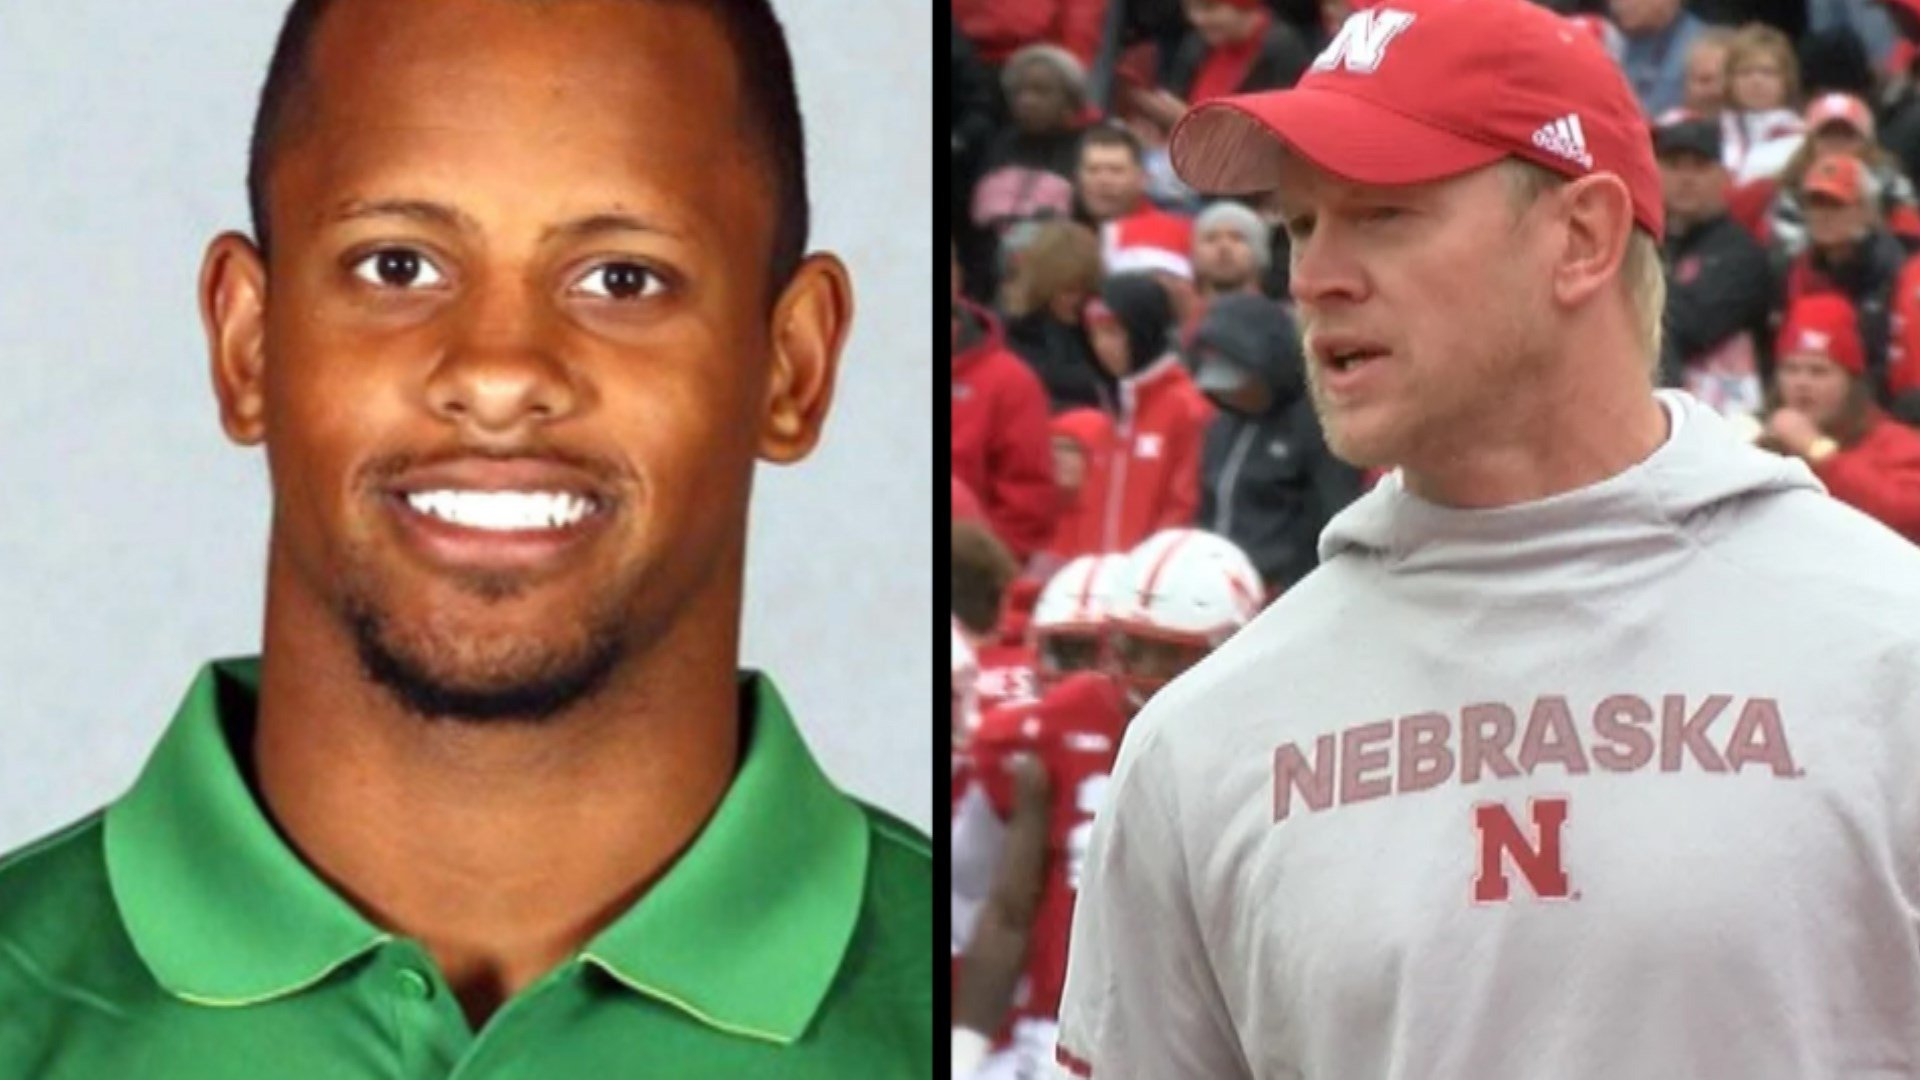 'Hero' coach who tackled armed student at Oregon high school recalls advice from Scott Frost